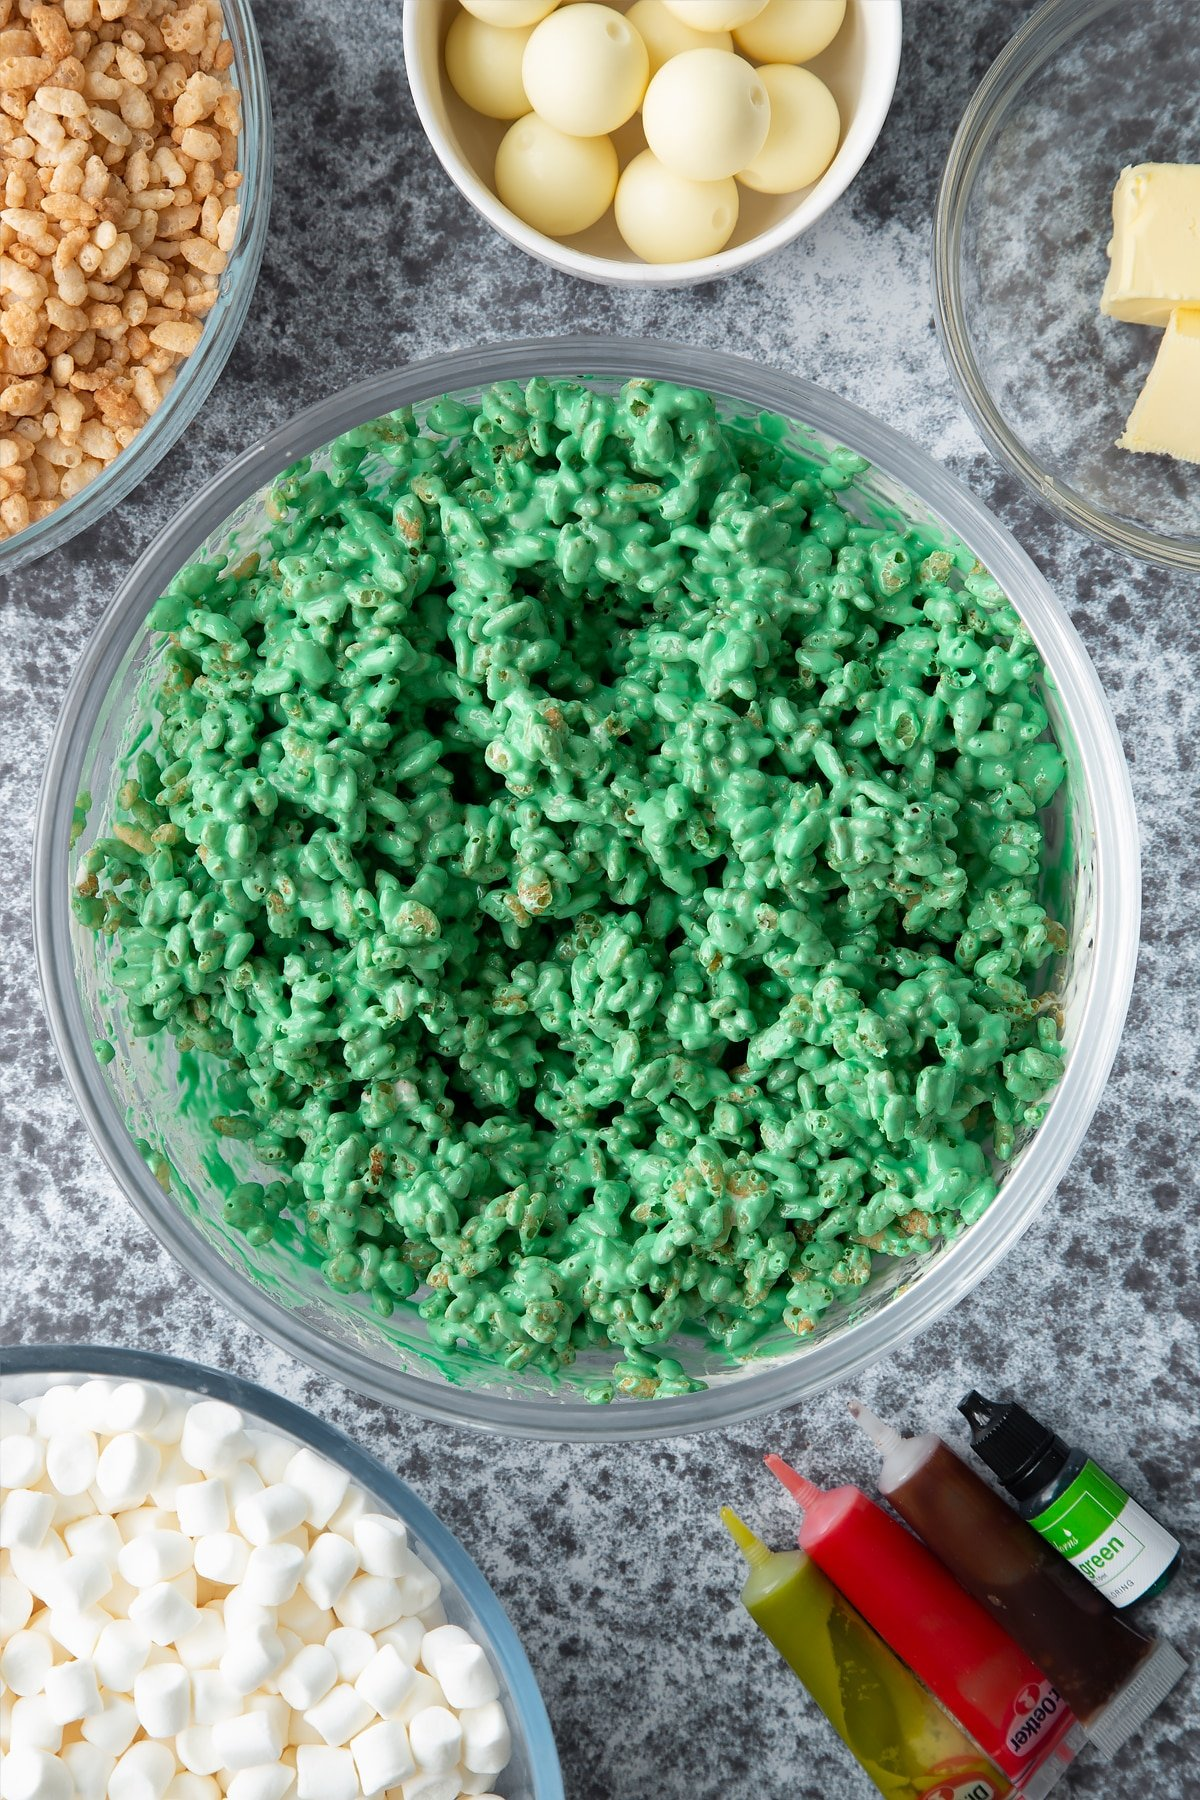 Dyed-green rice crispie treat mix in a large mixing bowl. Ingredients to make Halloween crispy cakes surround the bowl.